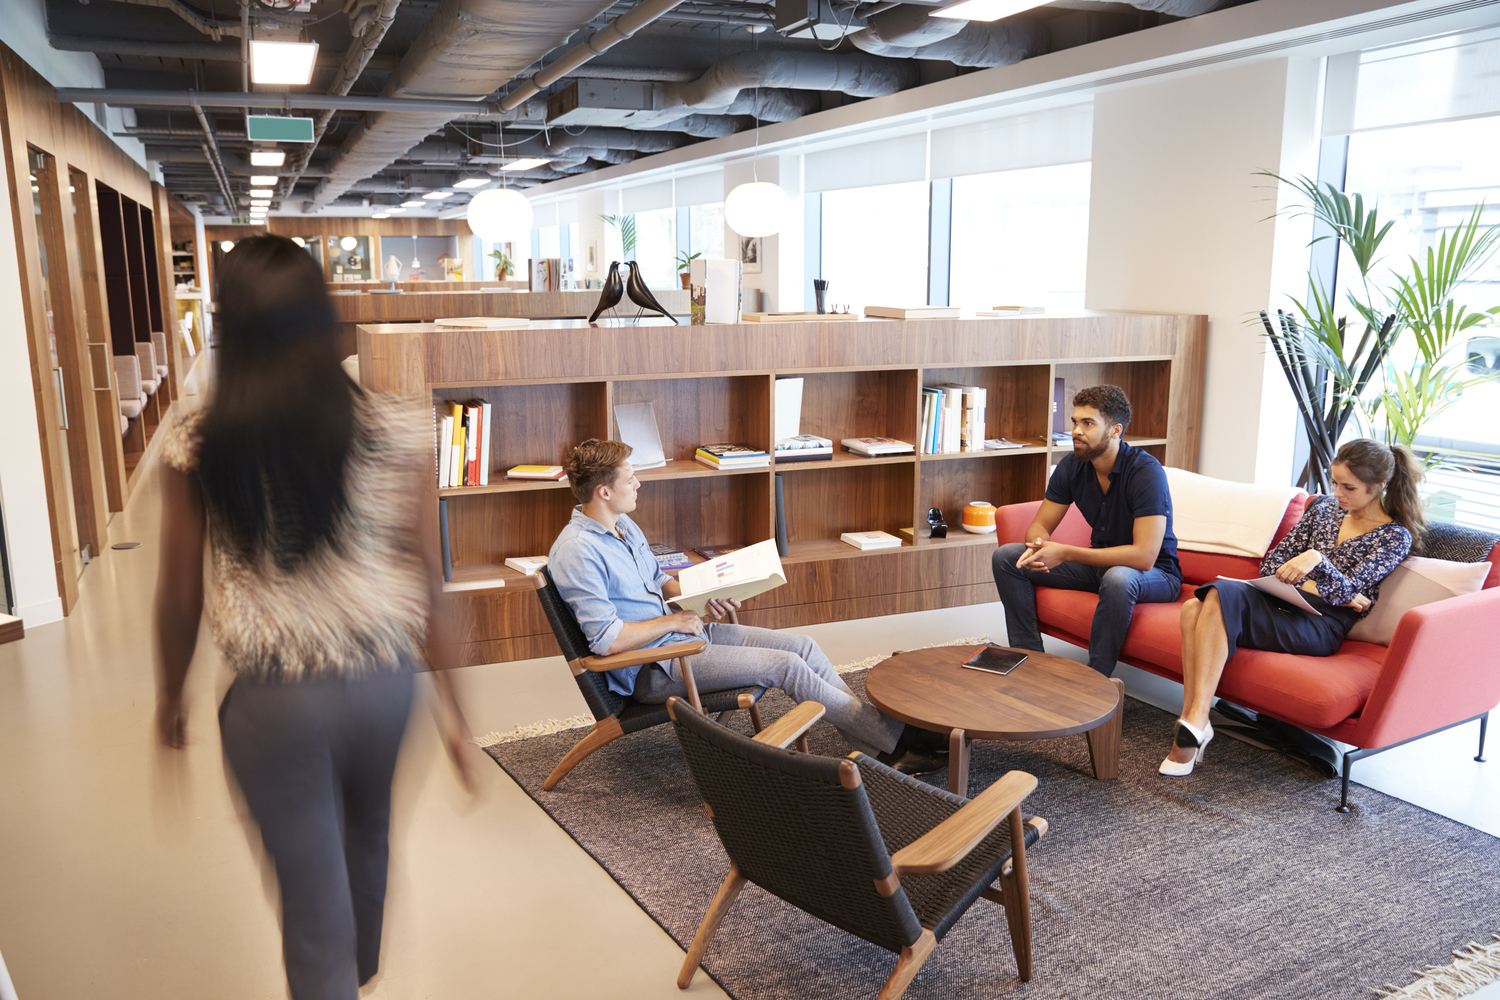 How to Design an Office Space to Support Innovation - business.com